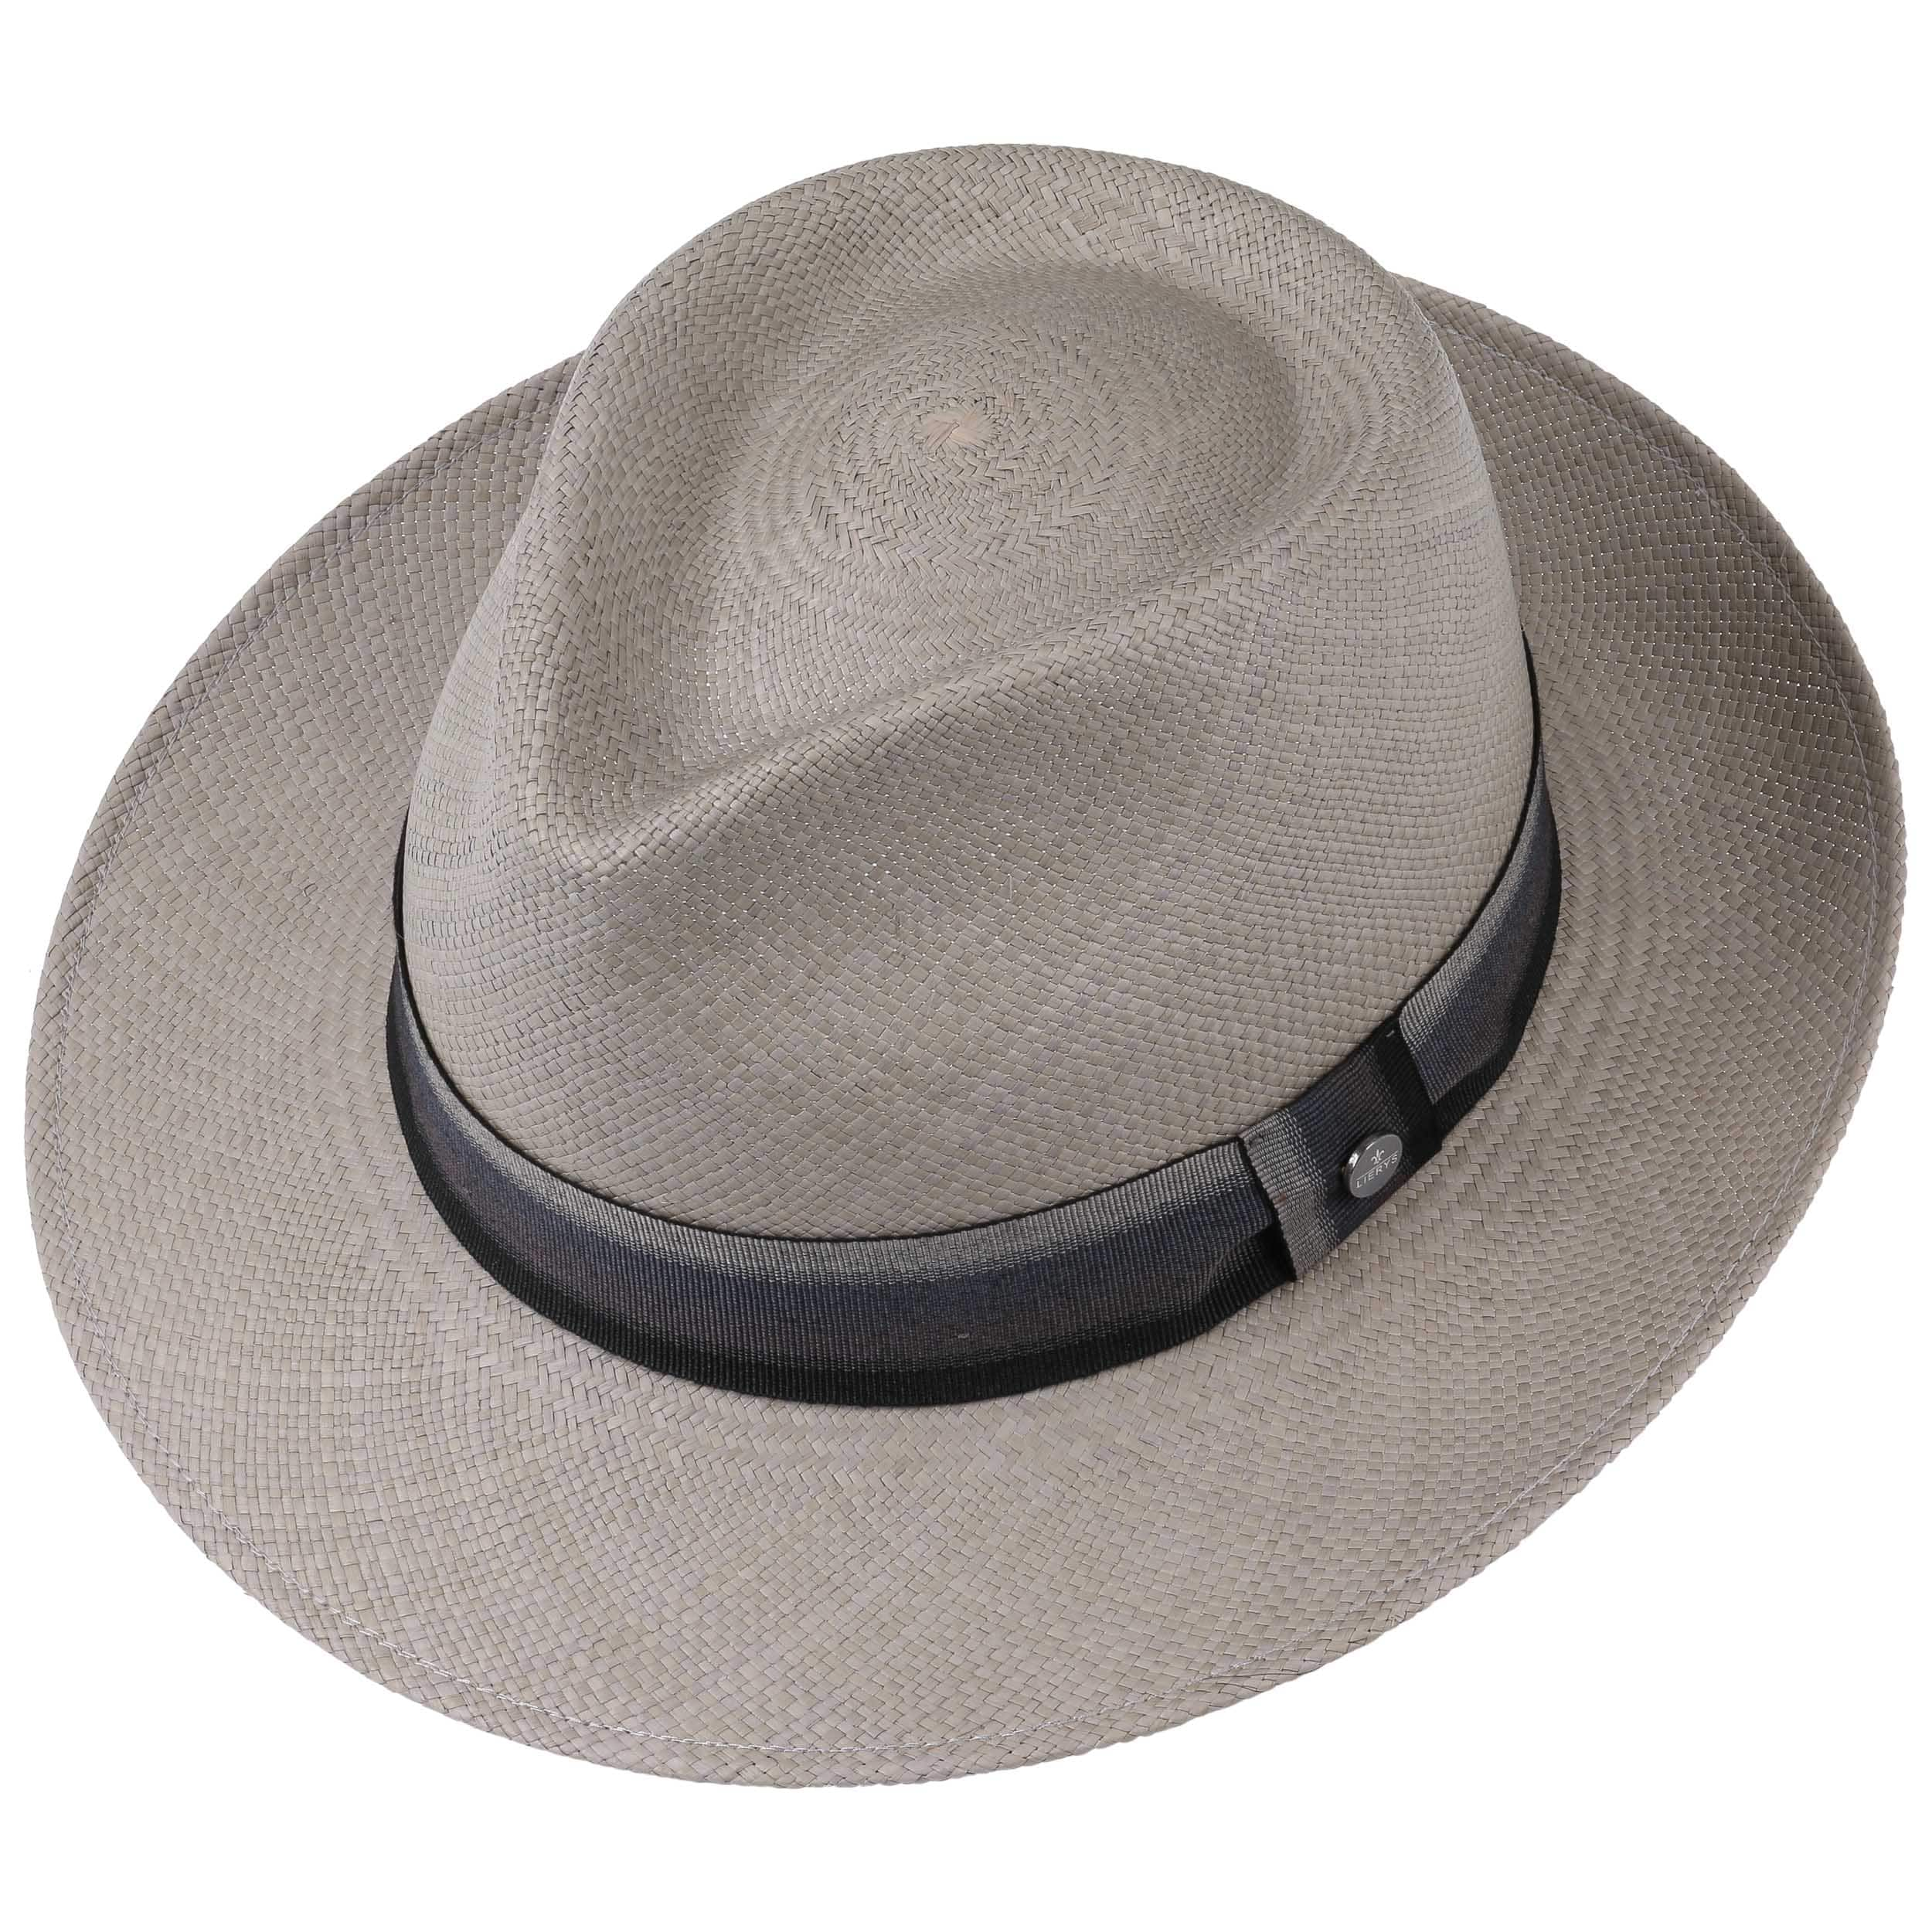 4db63d61e20 Grey Paradise Bogart Panama Hat by Lierys - grey 1 ...